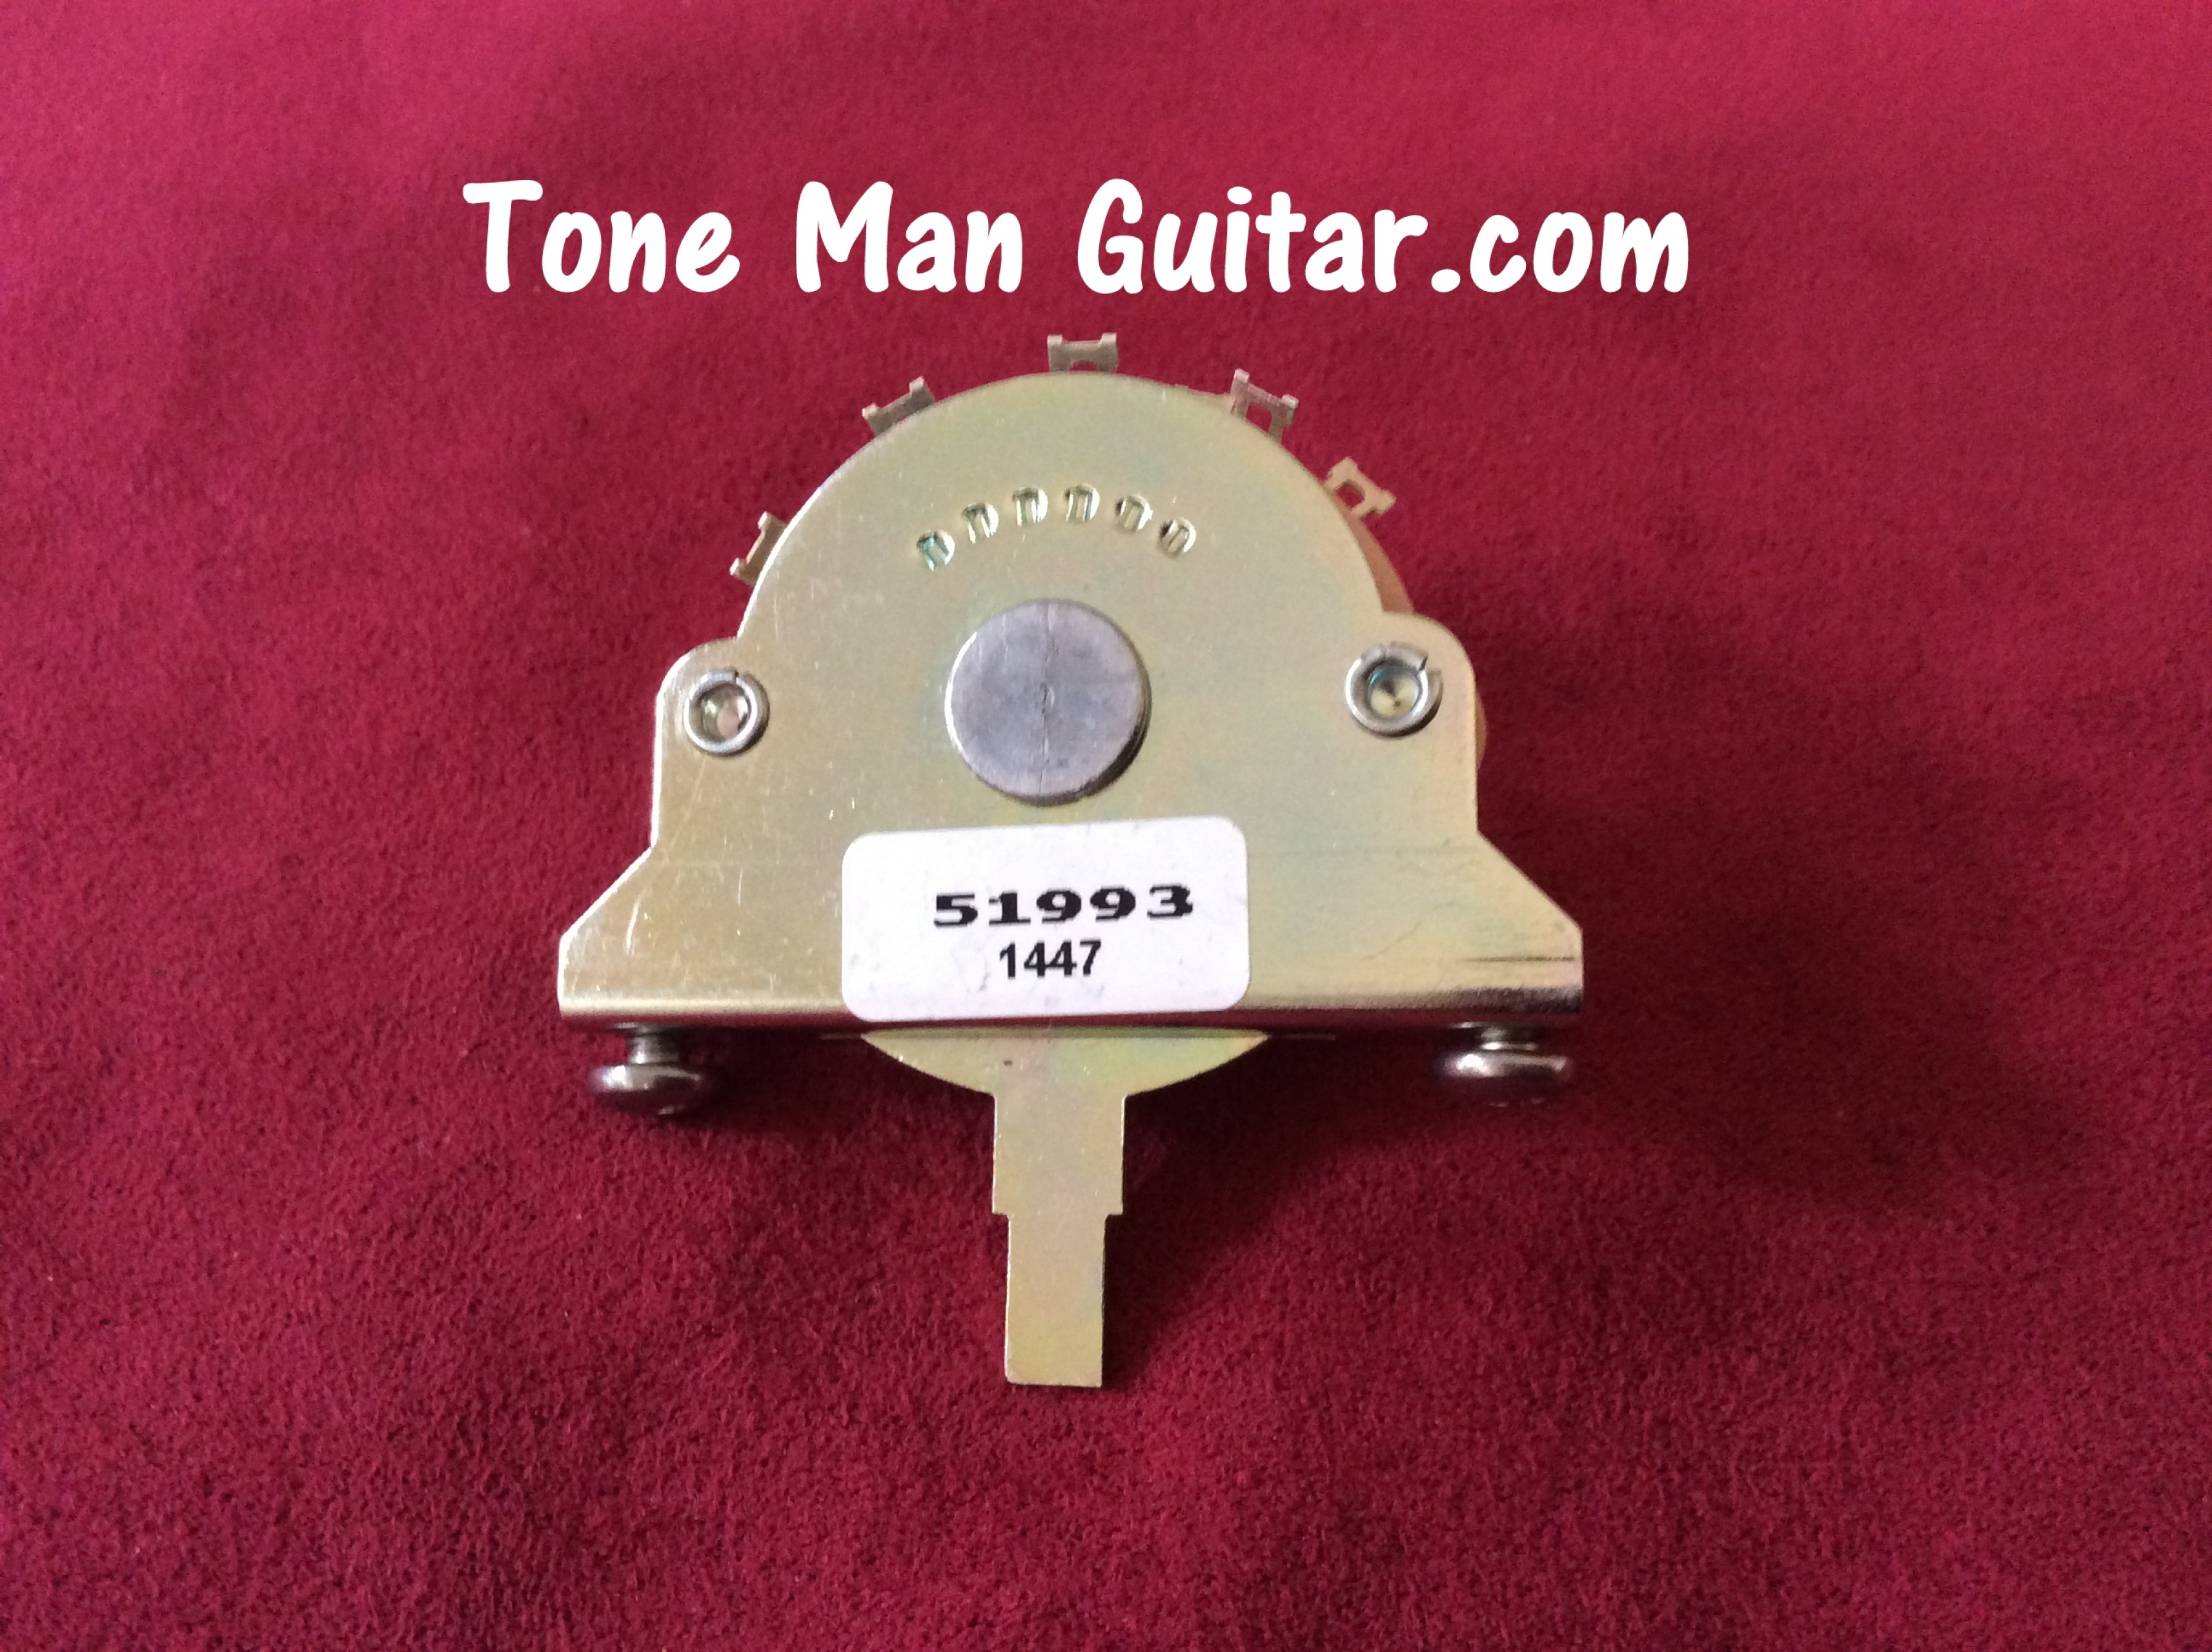 eric johnson tone stratocaster wiring kit pio tone cap 5 way switch Eric Johnson Guitar Wiring Kit stratocaster fender prewired wiring harness kit eric johnson wiring set up pio tone cap